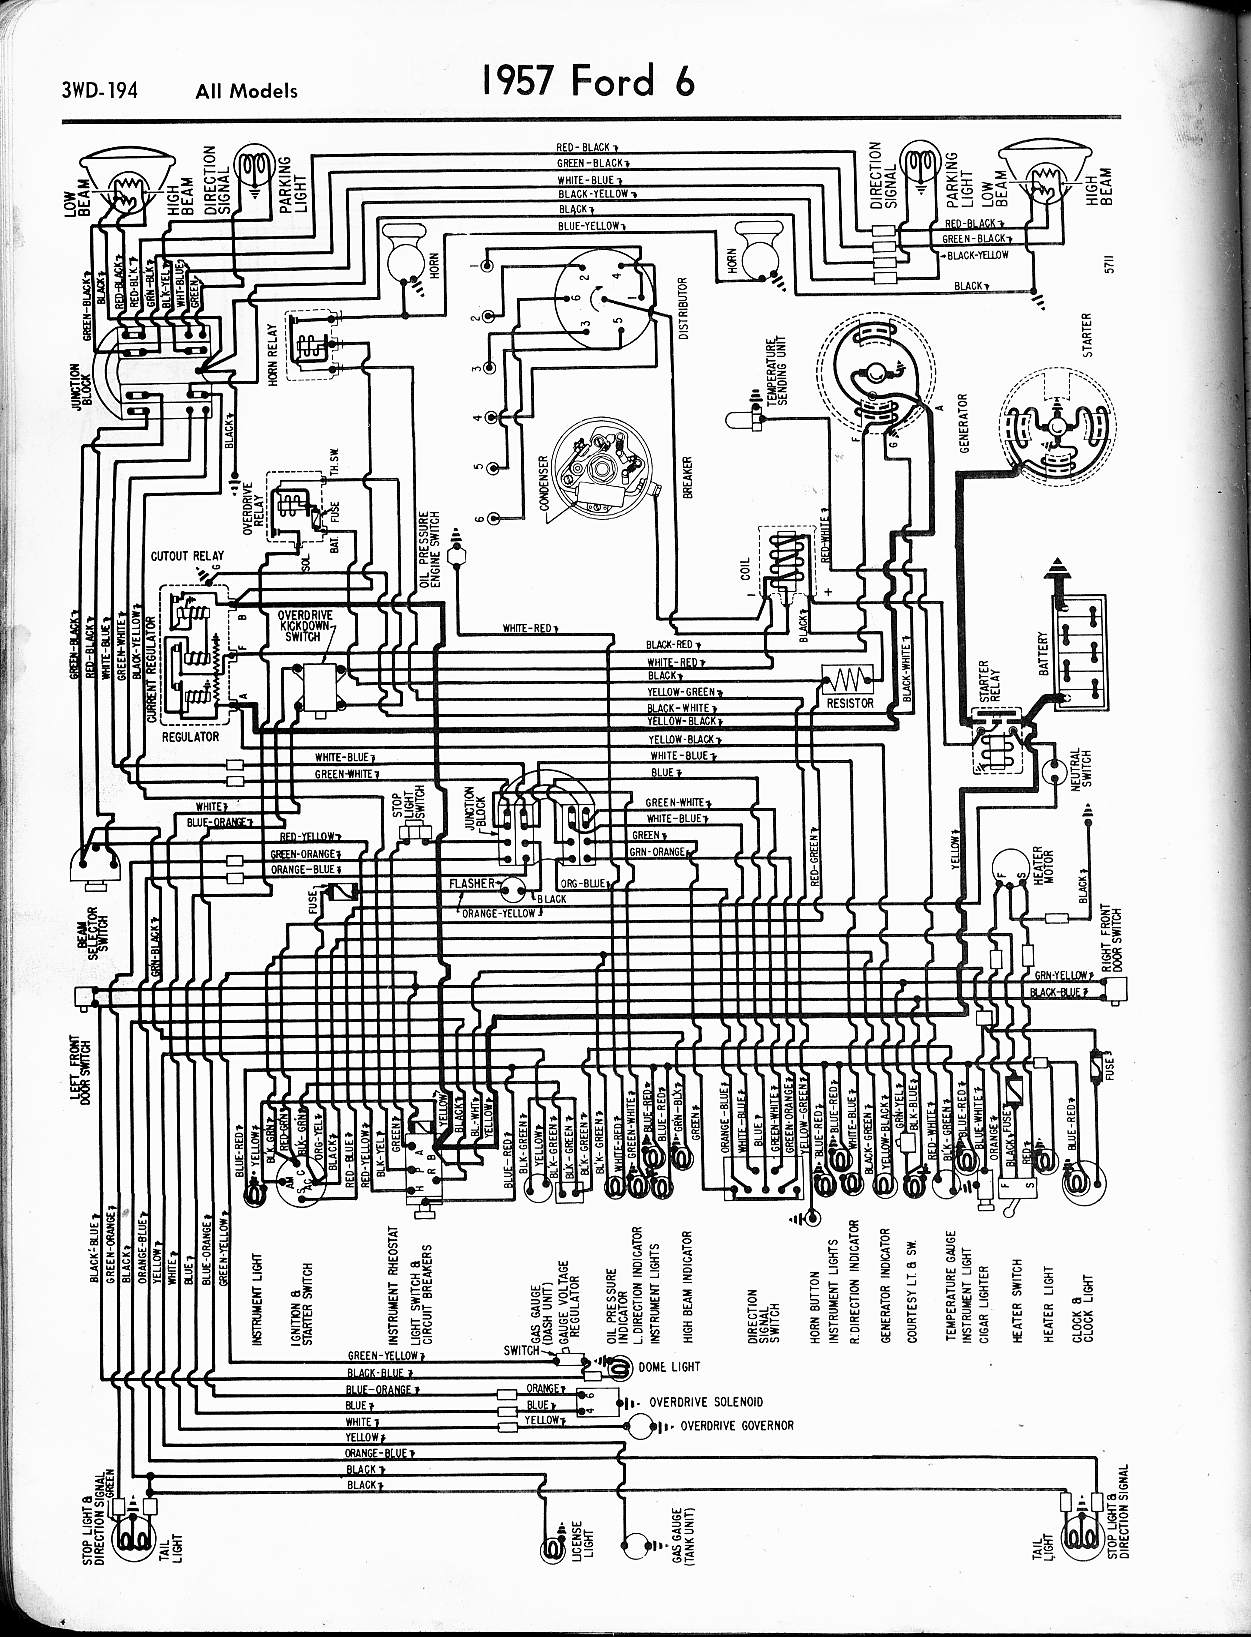 1958 Ford Headlight Switch Wiring Diagram Circuit Symbols 1993 Explorer 1957 Trusted Diagrams U2022 Rh Weneedradio Org Ranger Universal